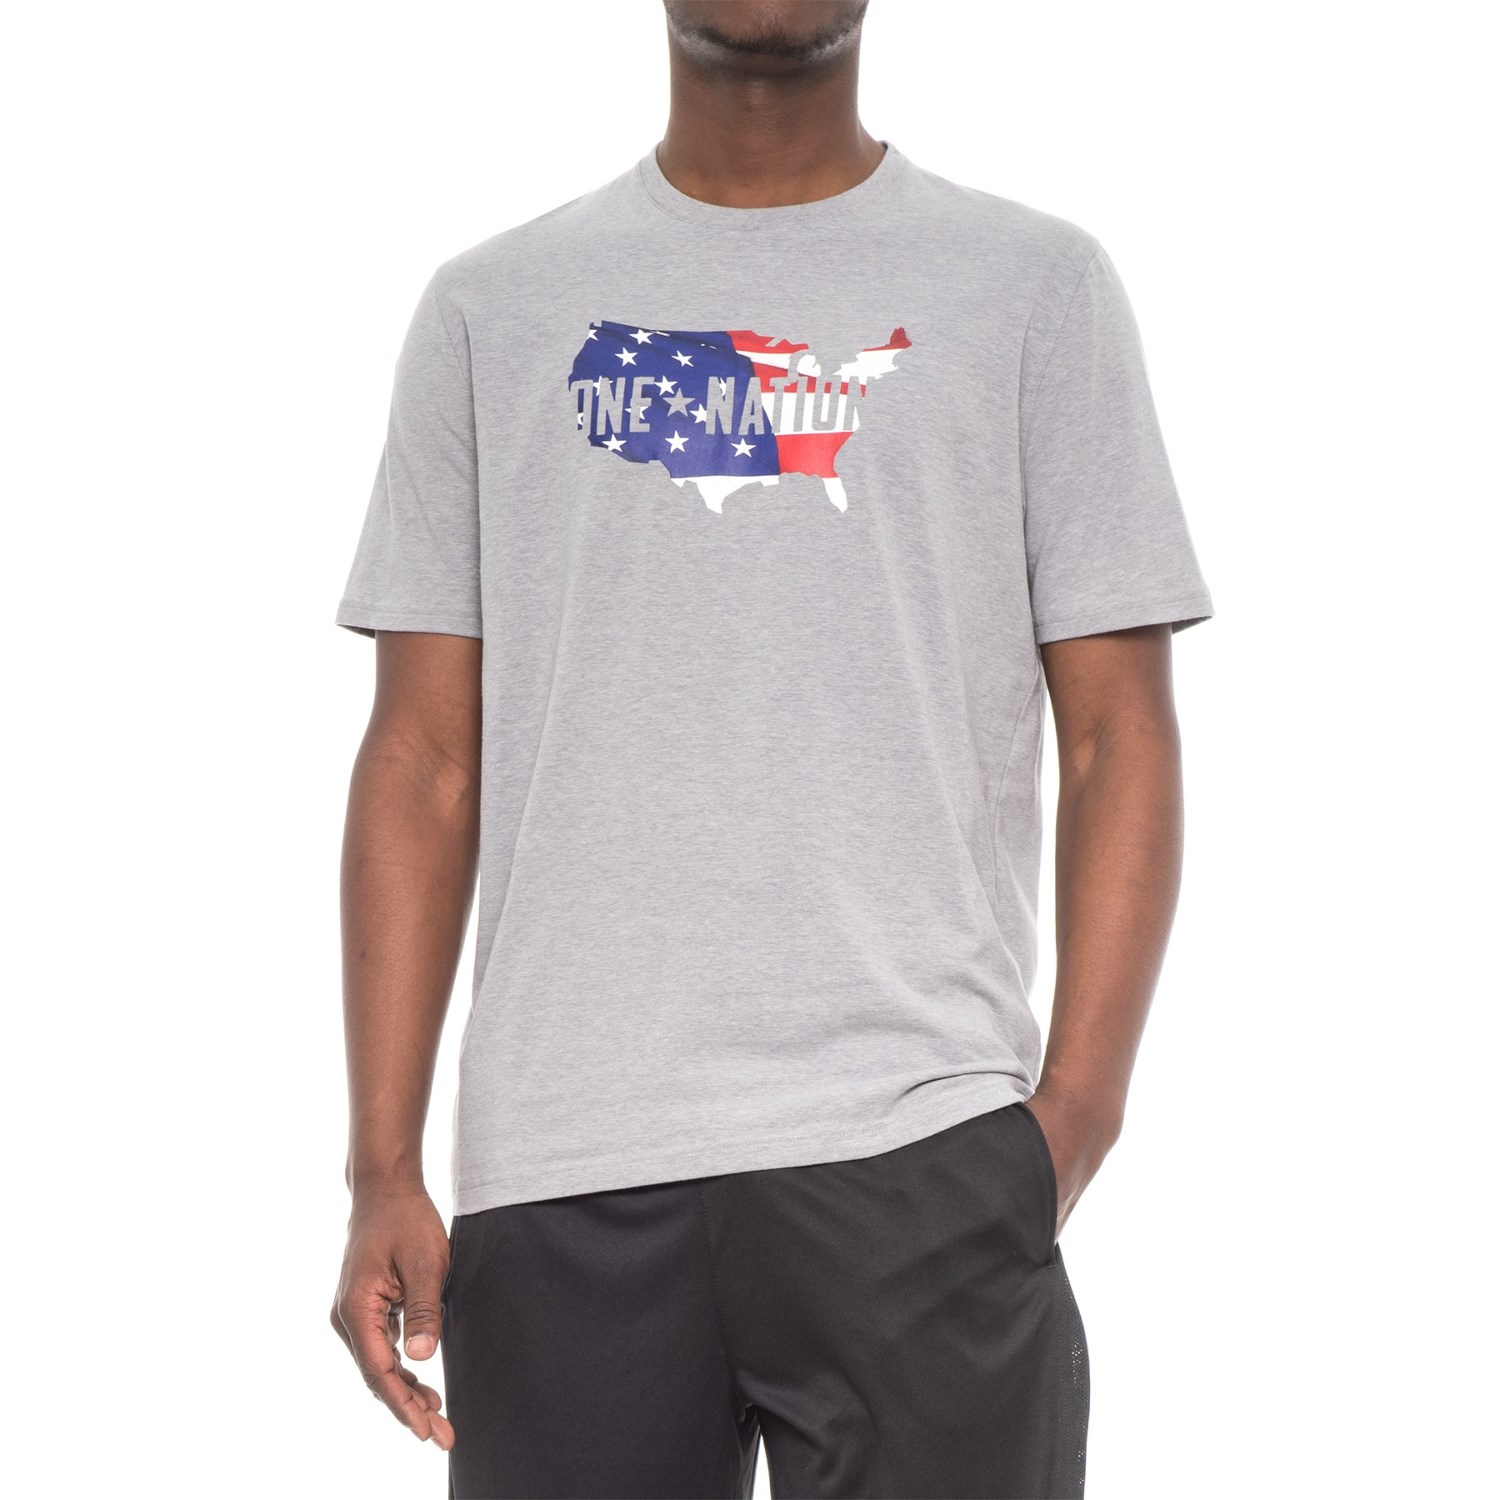 0d2f342d7 Under Armour Freedom One Nation Fill T-Shirt - Short Sleeve (For Men ...